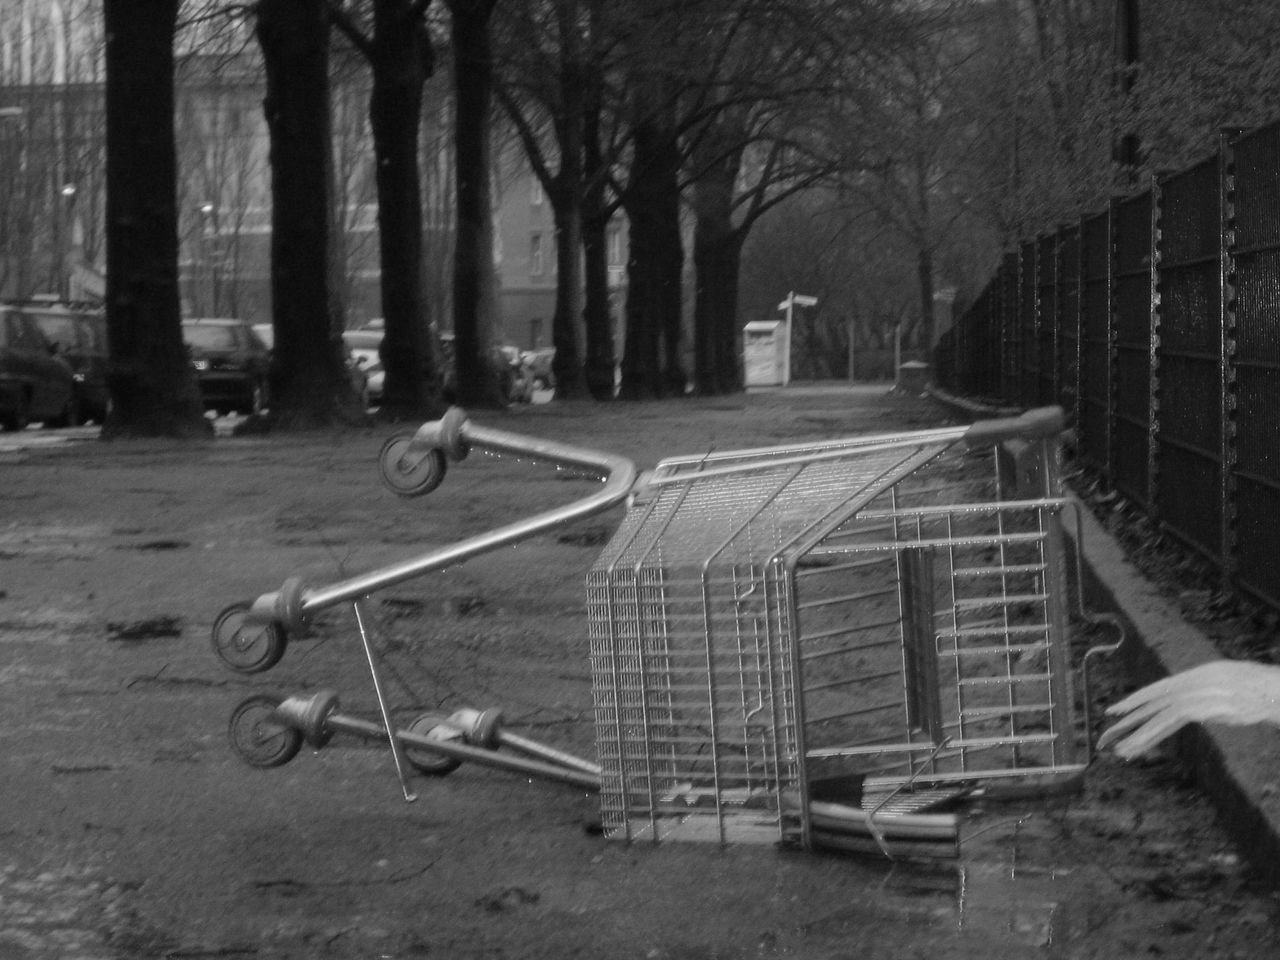 tree, tree trunk, shopping cart, trolley, no people, day, outdoors, bare tree, architecture, supermarket